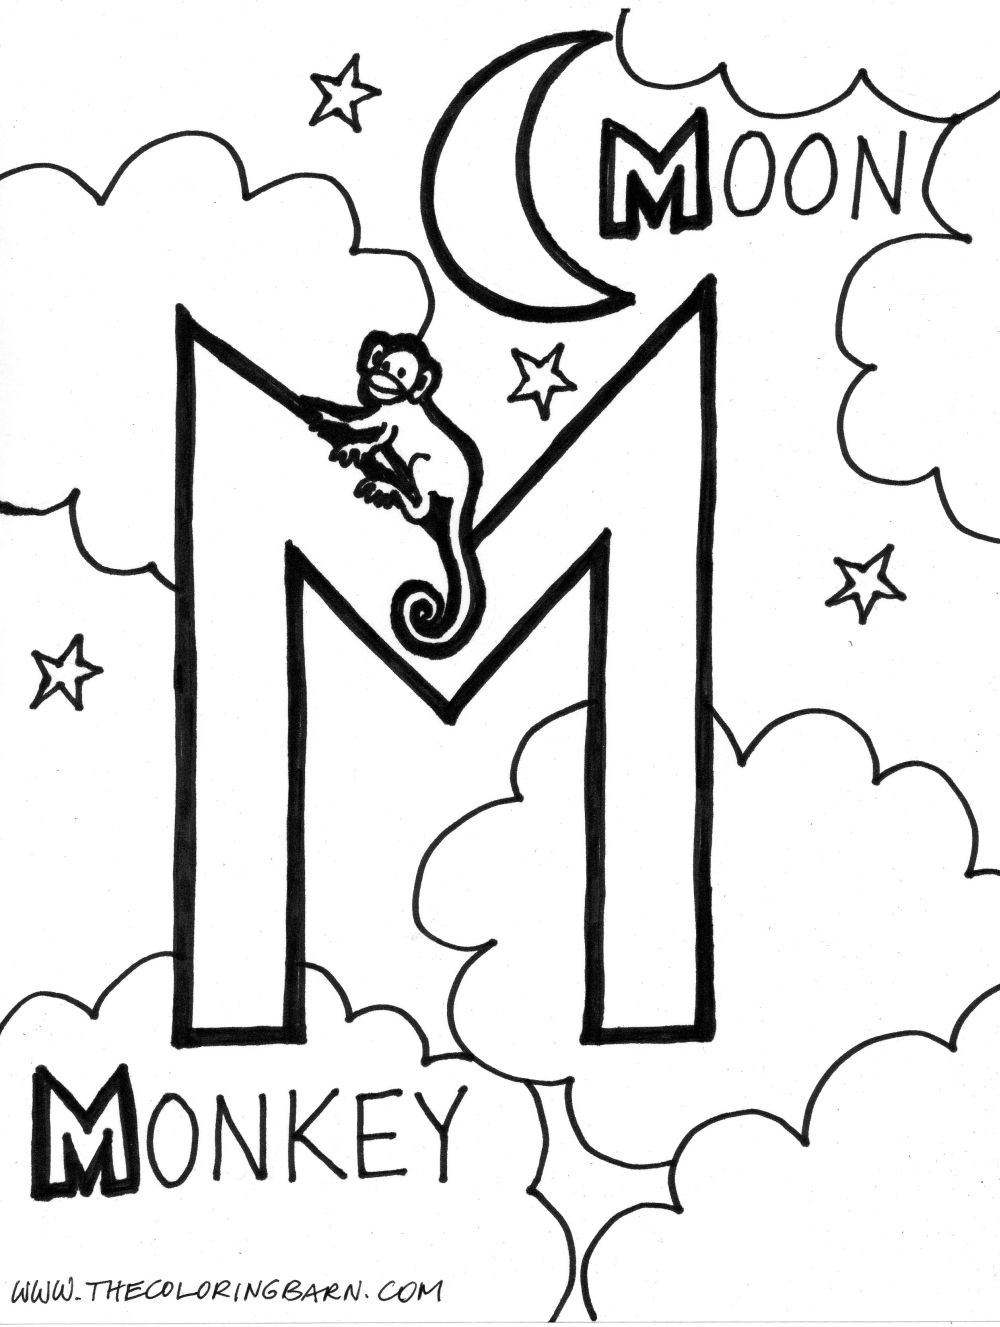 coloring printable m letter images letter m coloring pages to download and print for free letter images m printable coloring